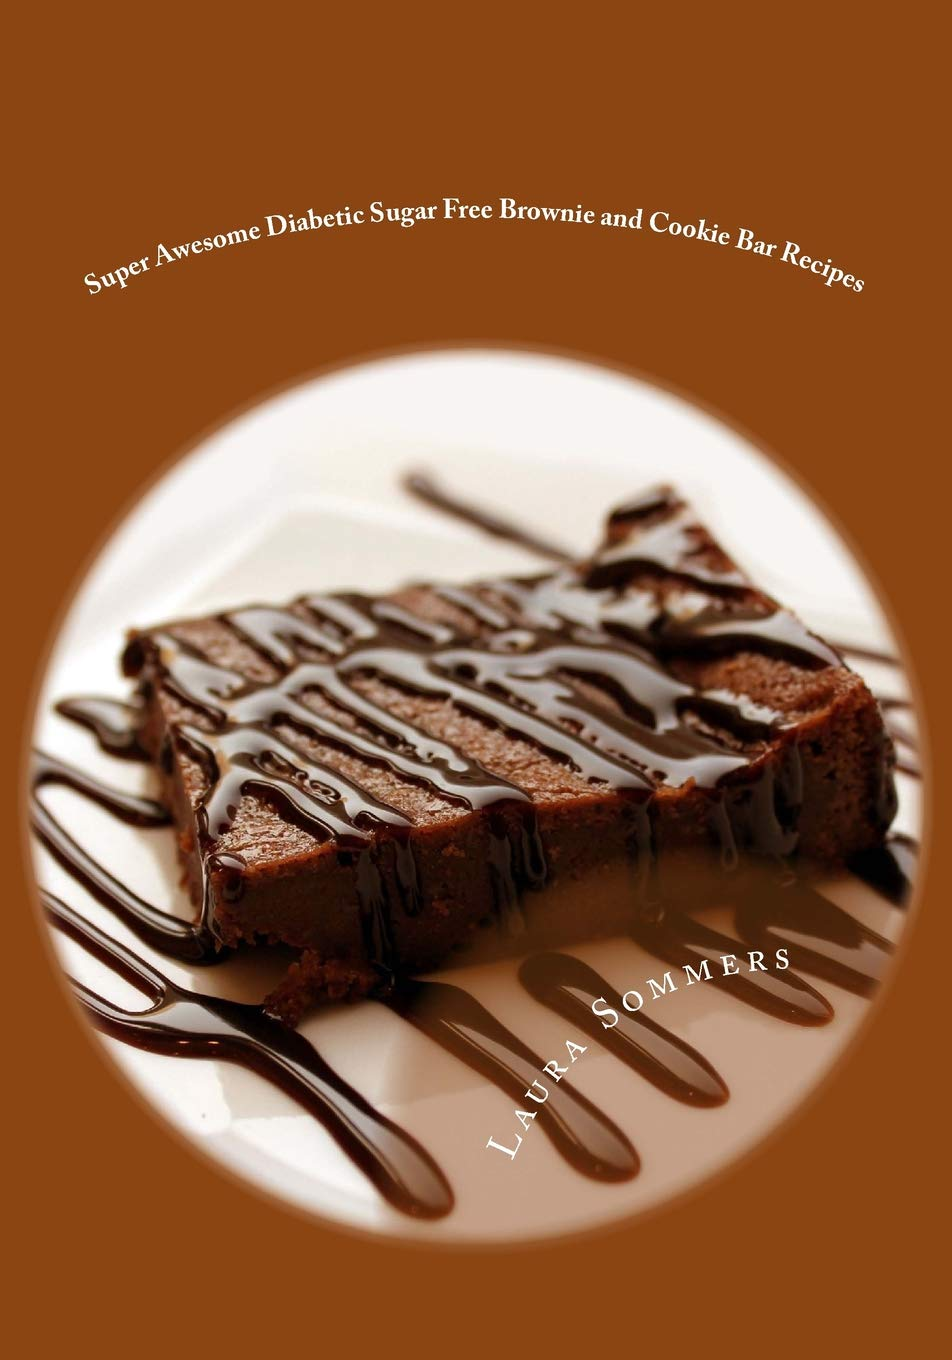 Super Awesome Diabetic Sugar Free Brownie And Cookie Bar